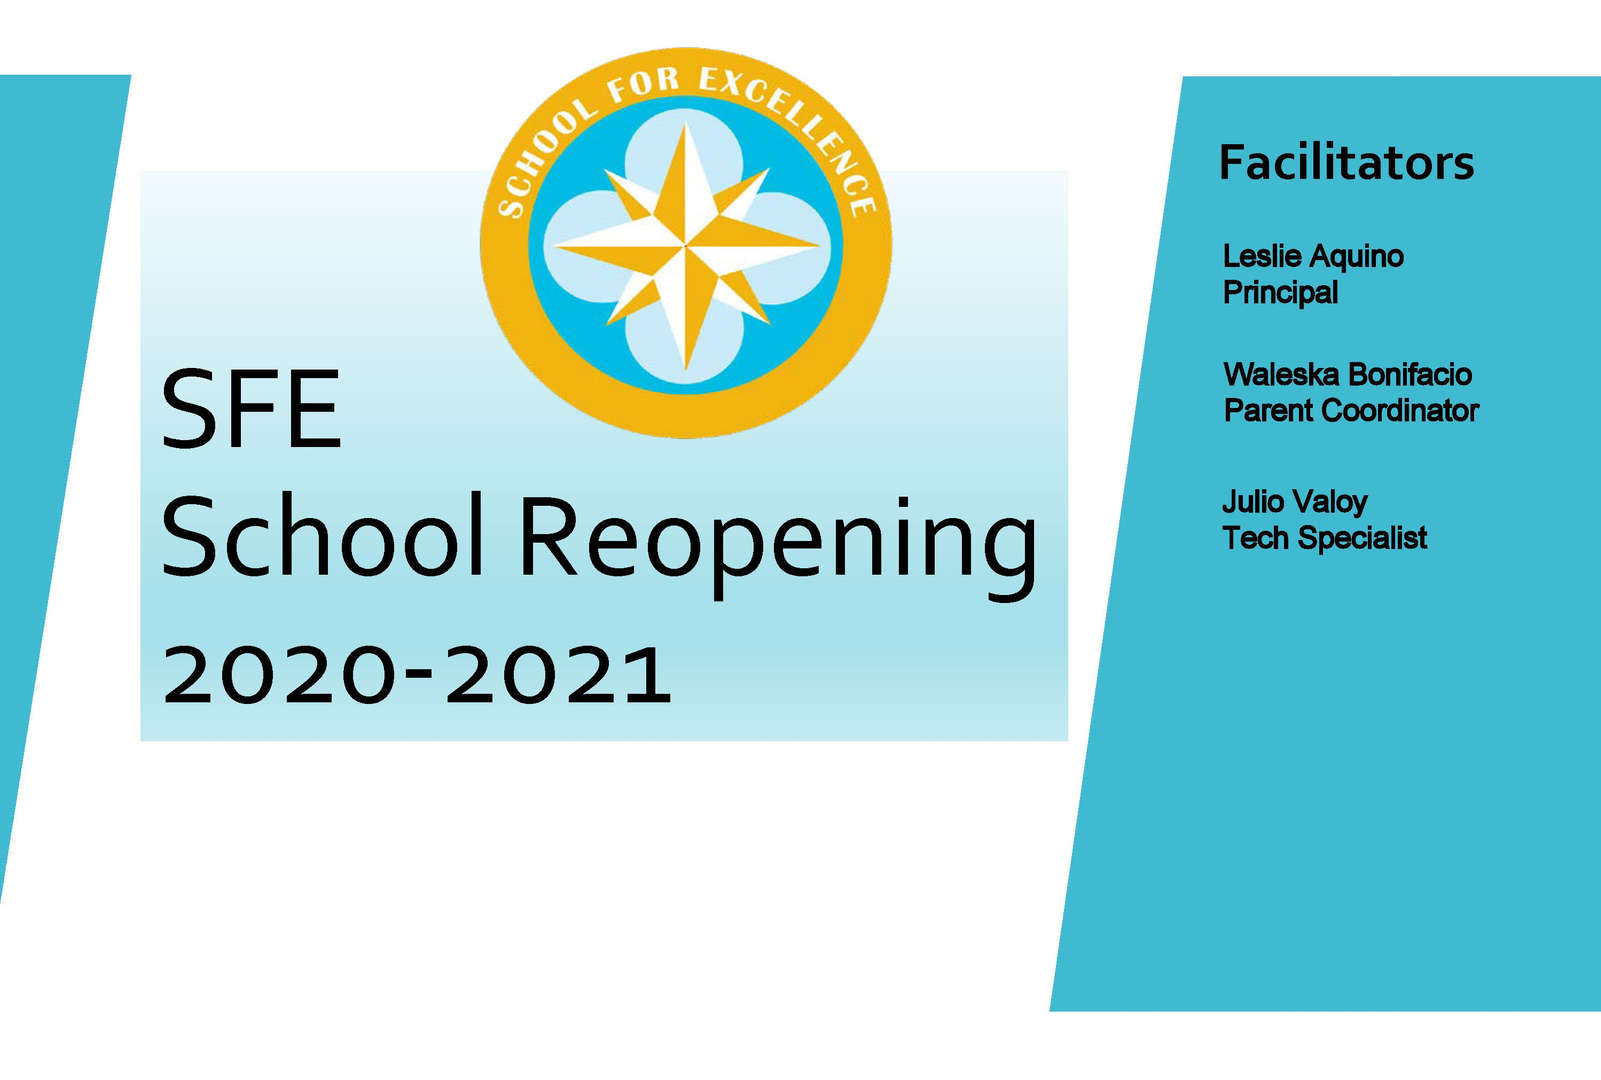 Picture of the title page for the School For Excellence 2020 reopening documentation.